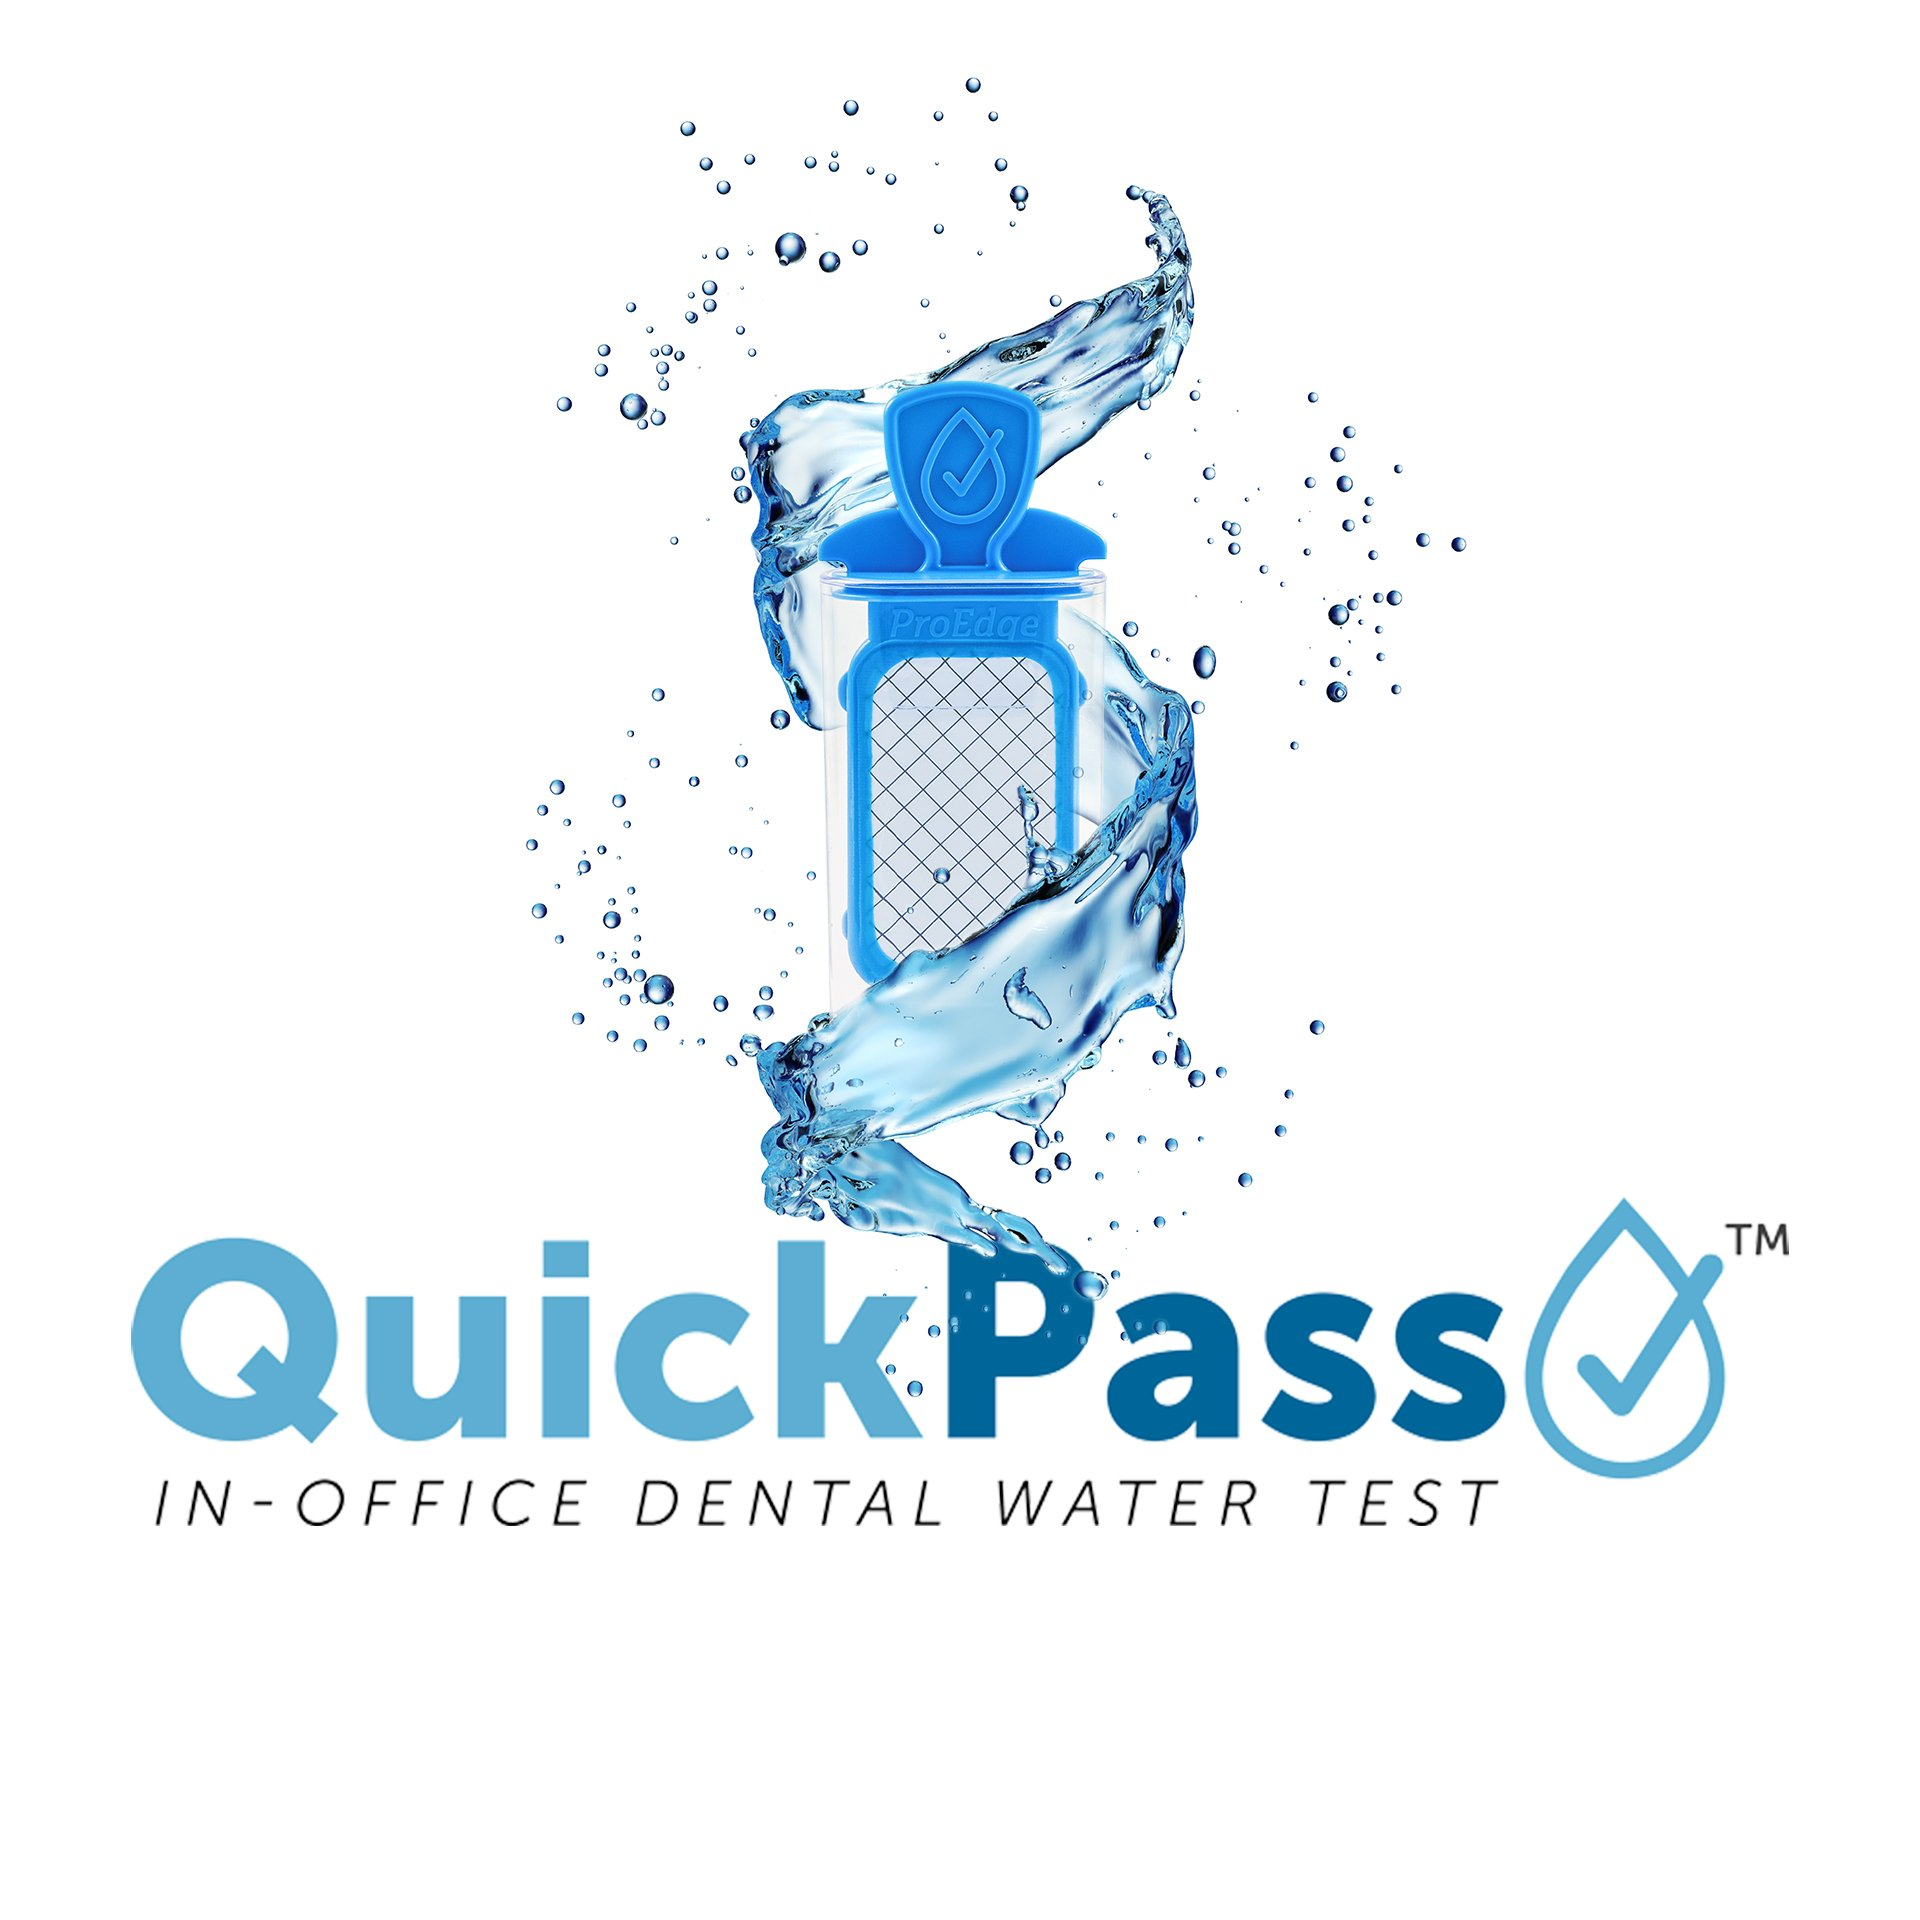 quickpass image